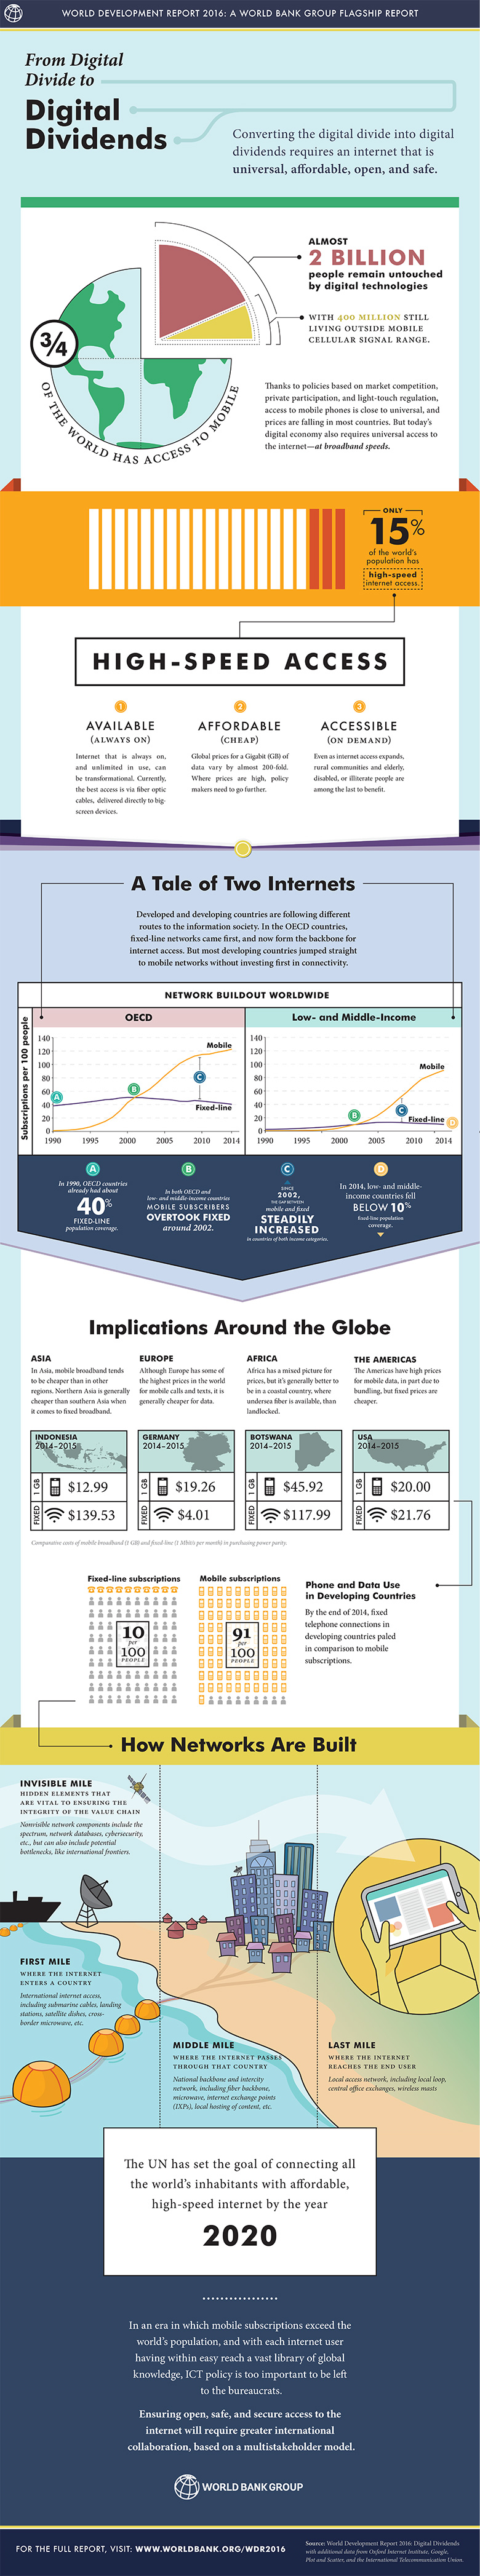 WDR 2016 infographic: From Digital Divides to Digital Dividends